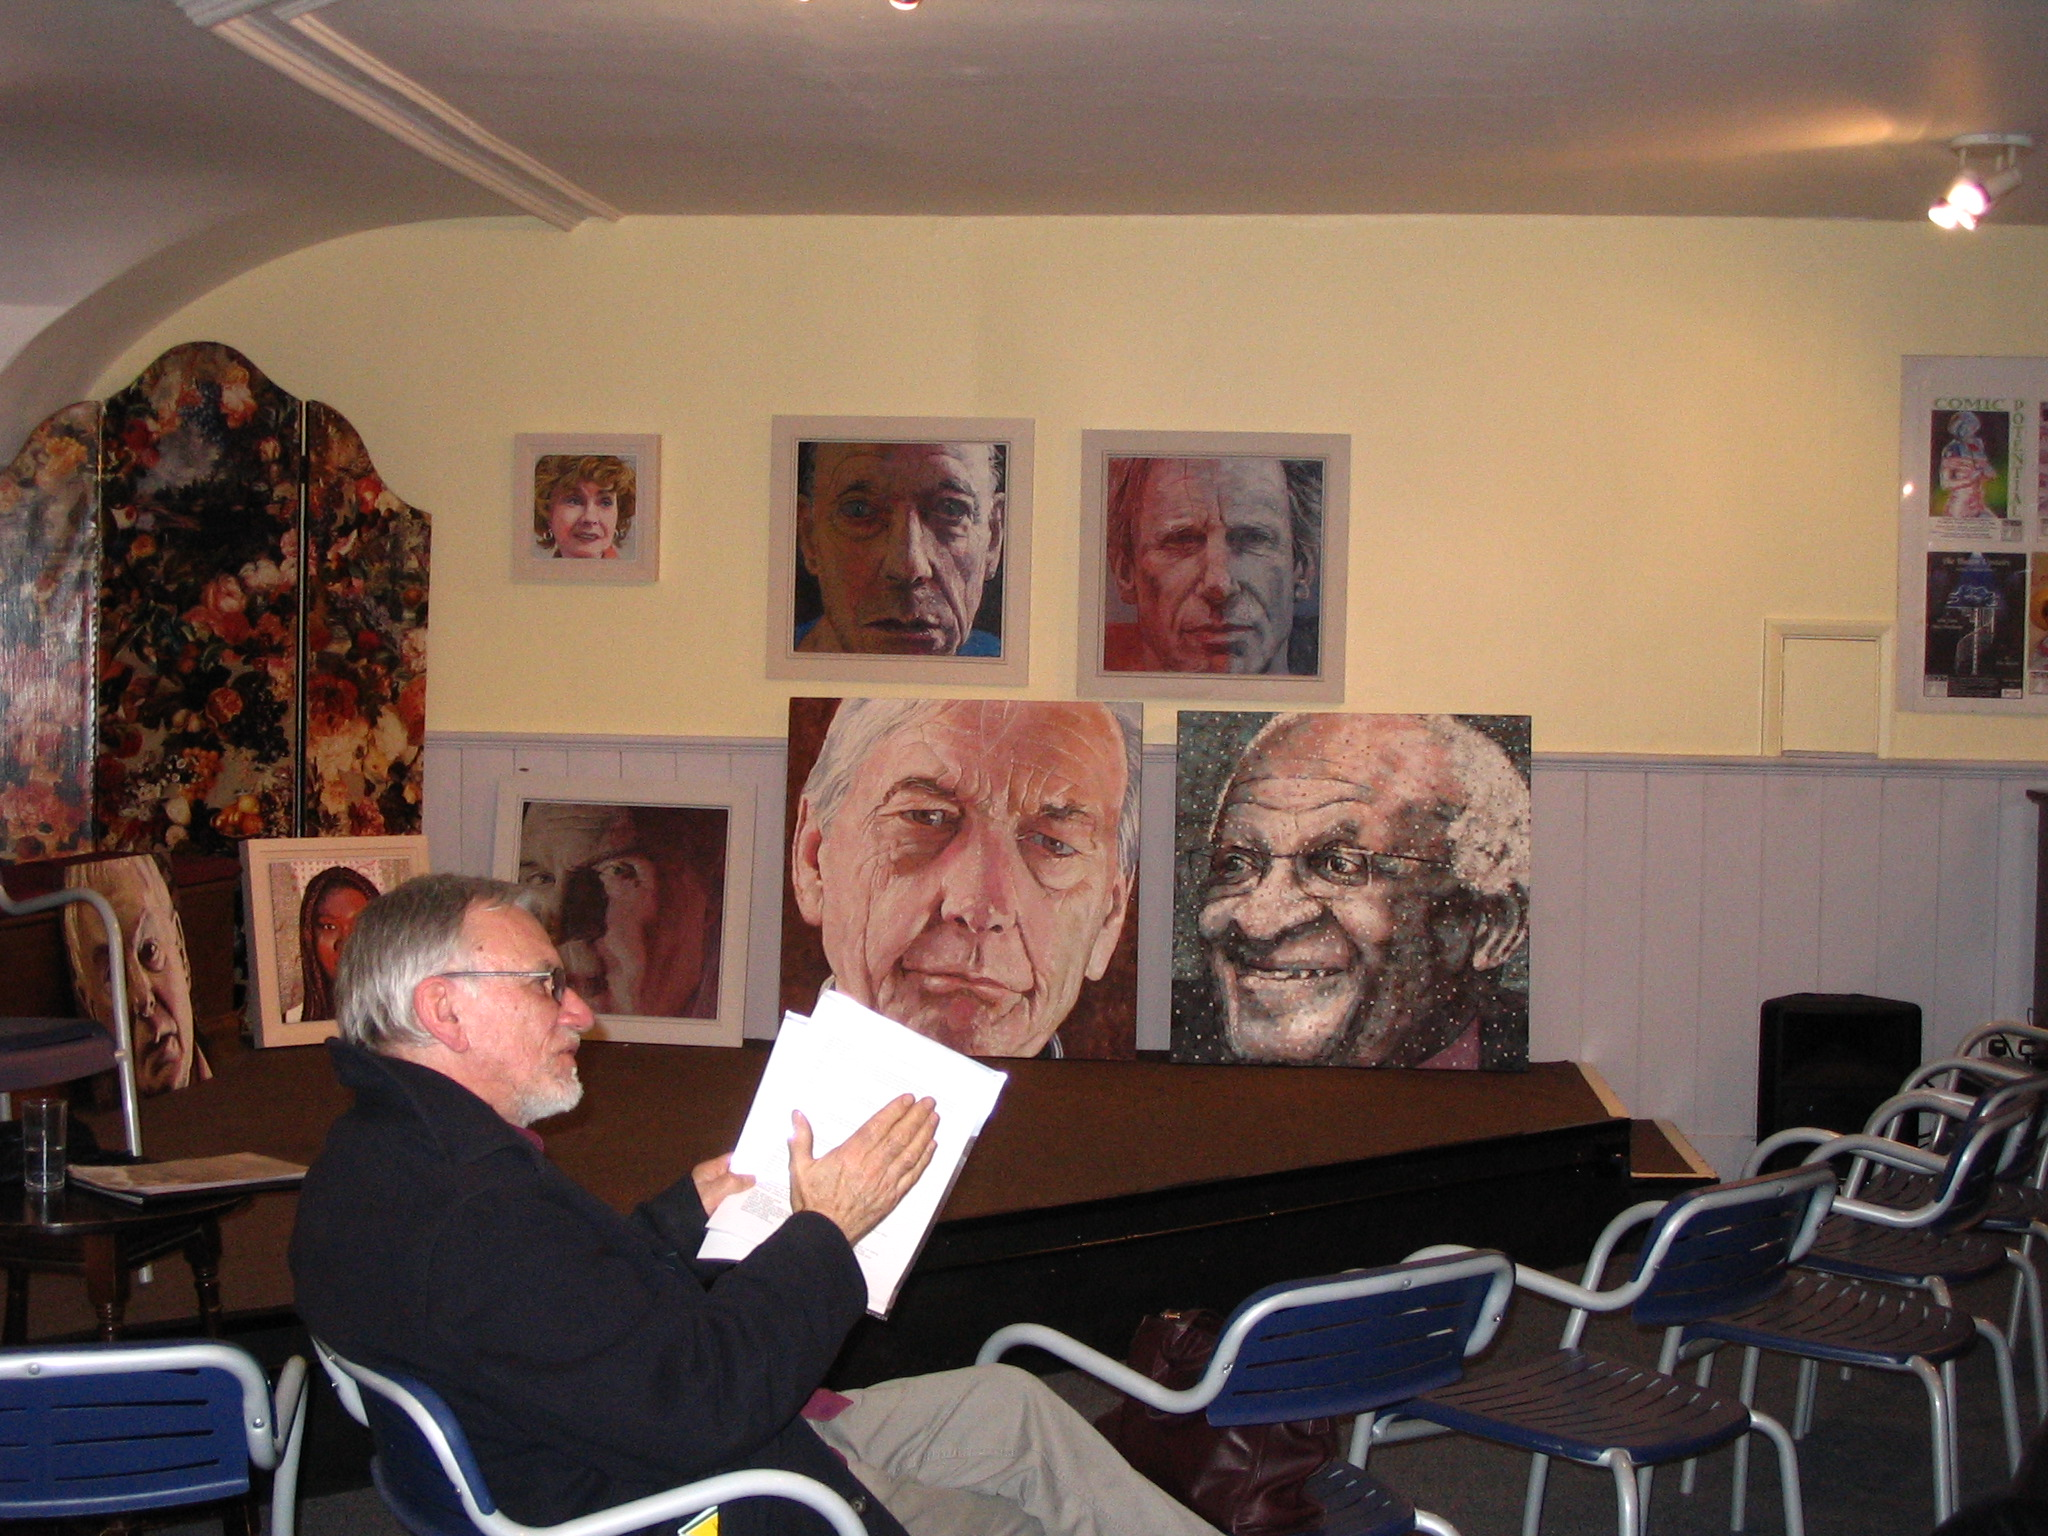 Artist Brian Elwell - Meetings with Remarkable People